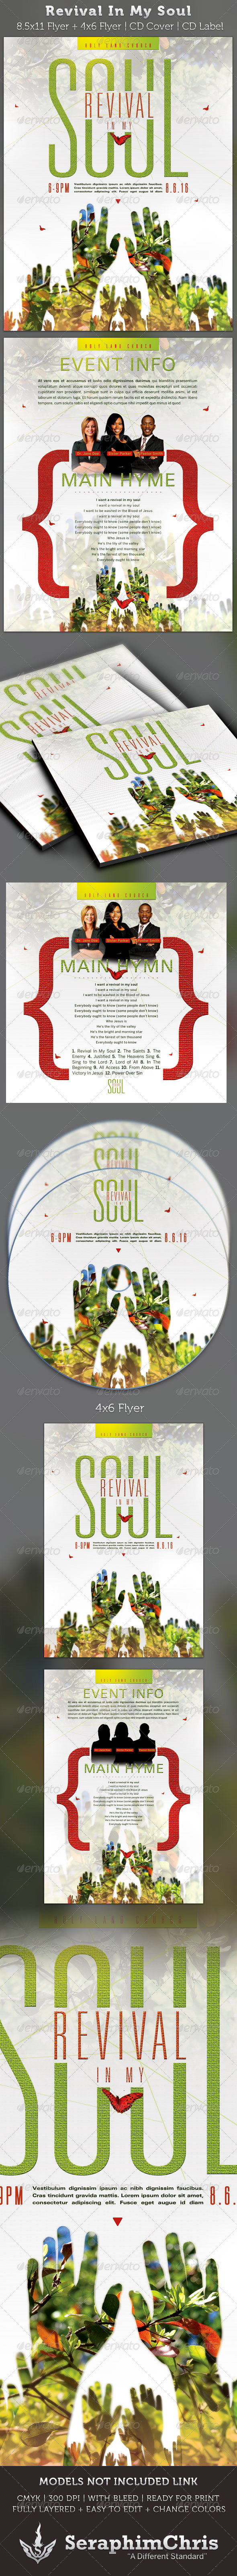 Revival In My Soul Flyer and CD Cover Template - Church Flyers